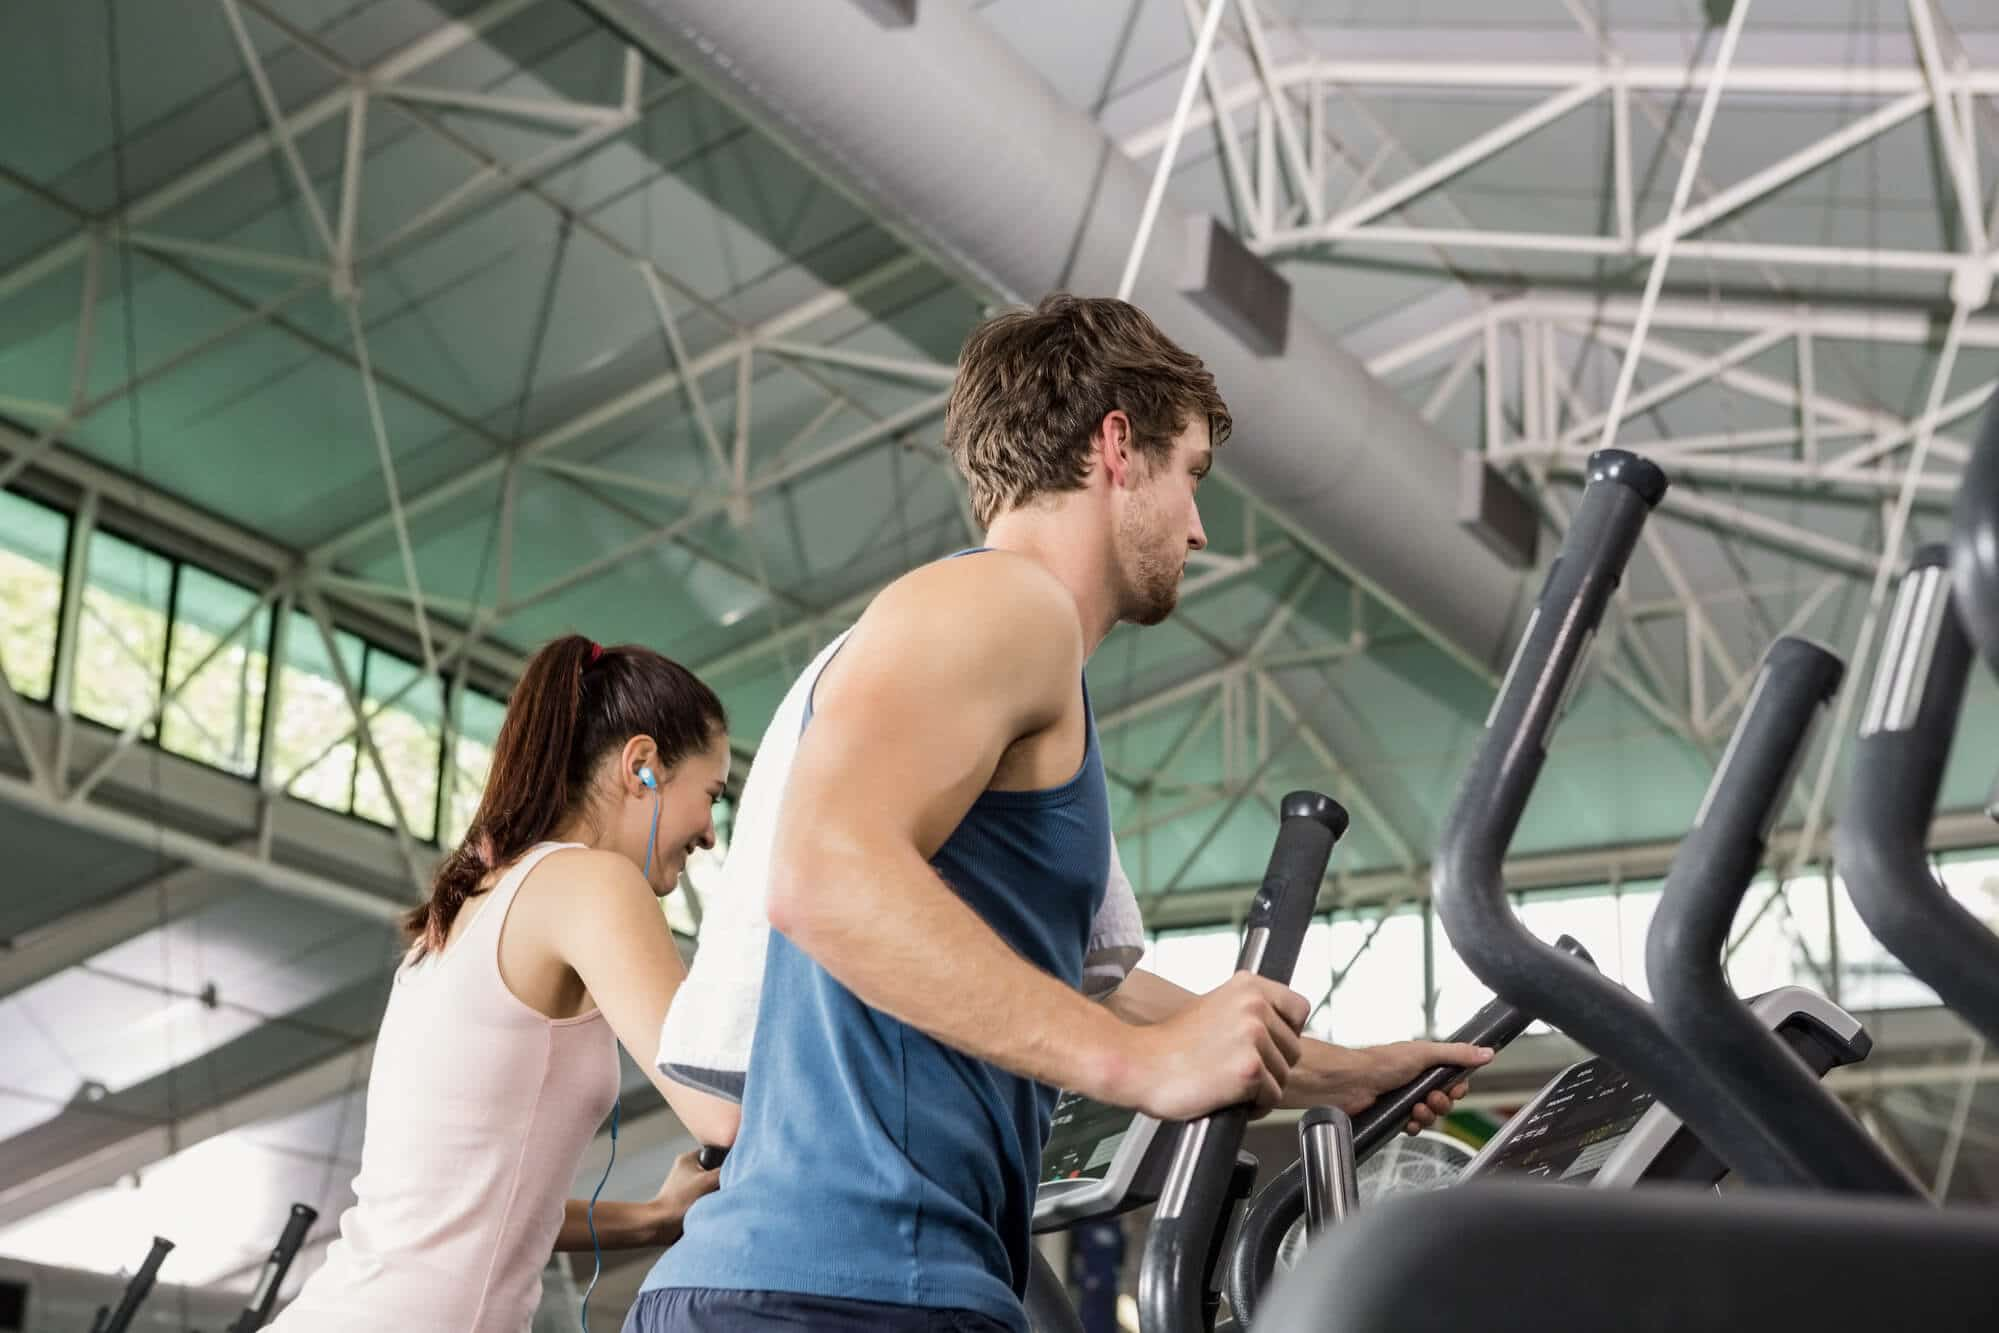 elliptical for toning arms - Fitness Expo